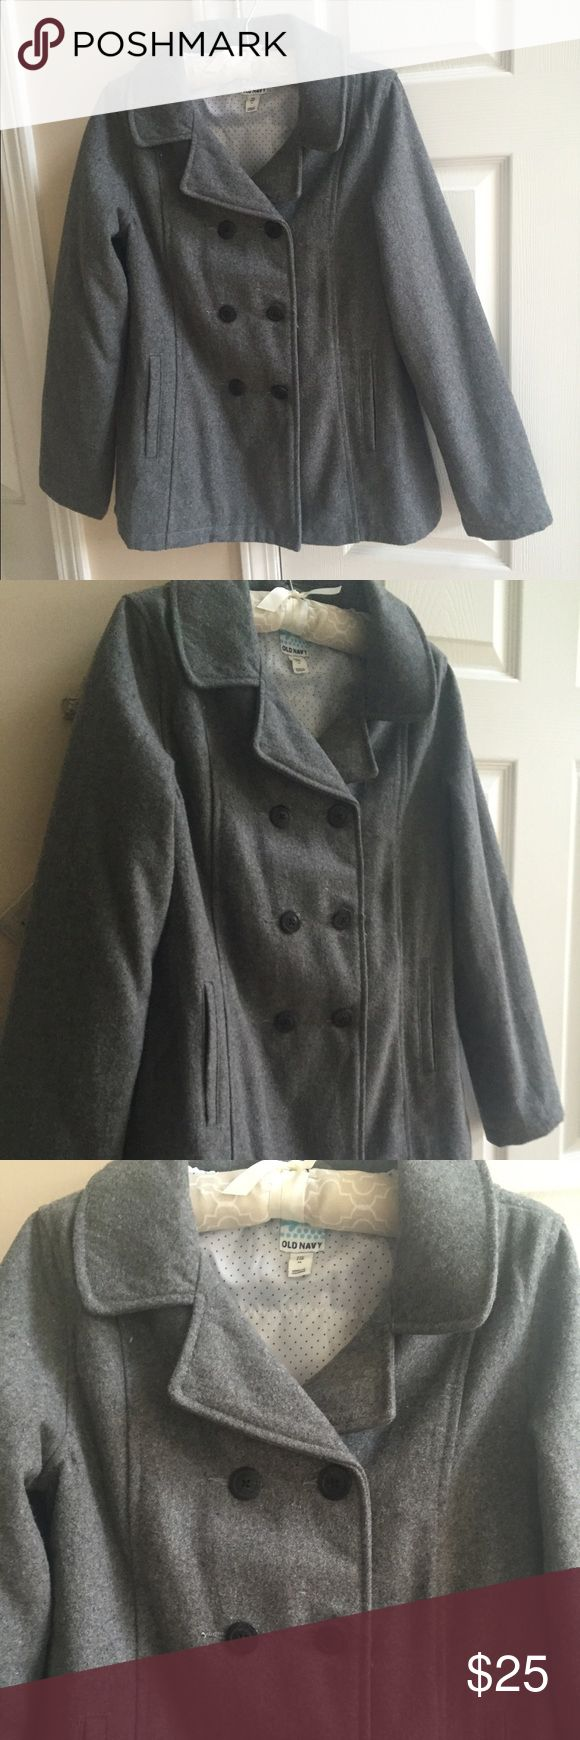 Old Navy Girls' Pea Coat This is a beautiful gray pea coat from Old a Navy.  In perfect condition, this coat is a nice blend of wool and polyester. The exquisite details make it extra special. The polka dot lining is super cute too! Your favorite girl will look adorable in this coat! Old Navy Jackets & Coats Pea Coats